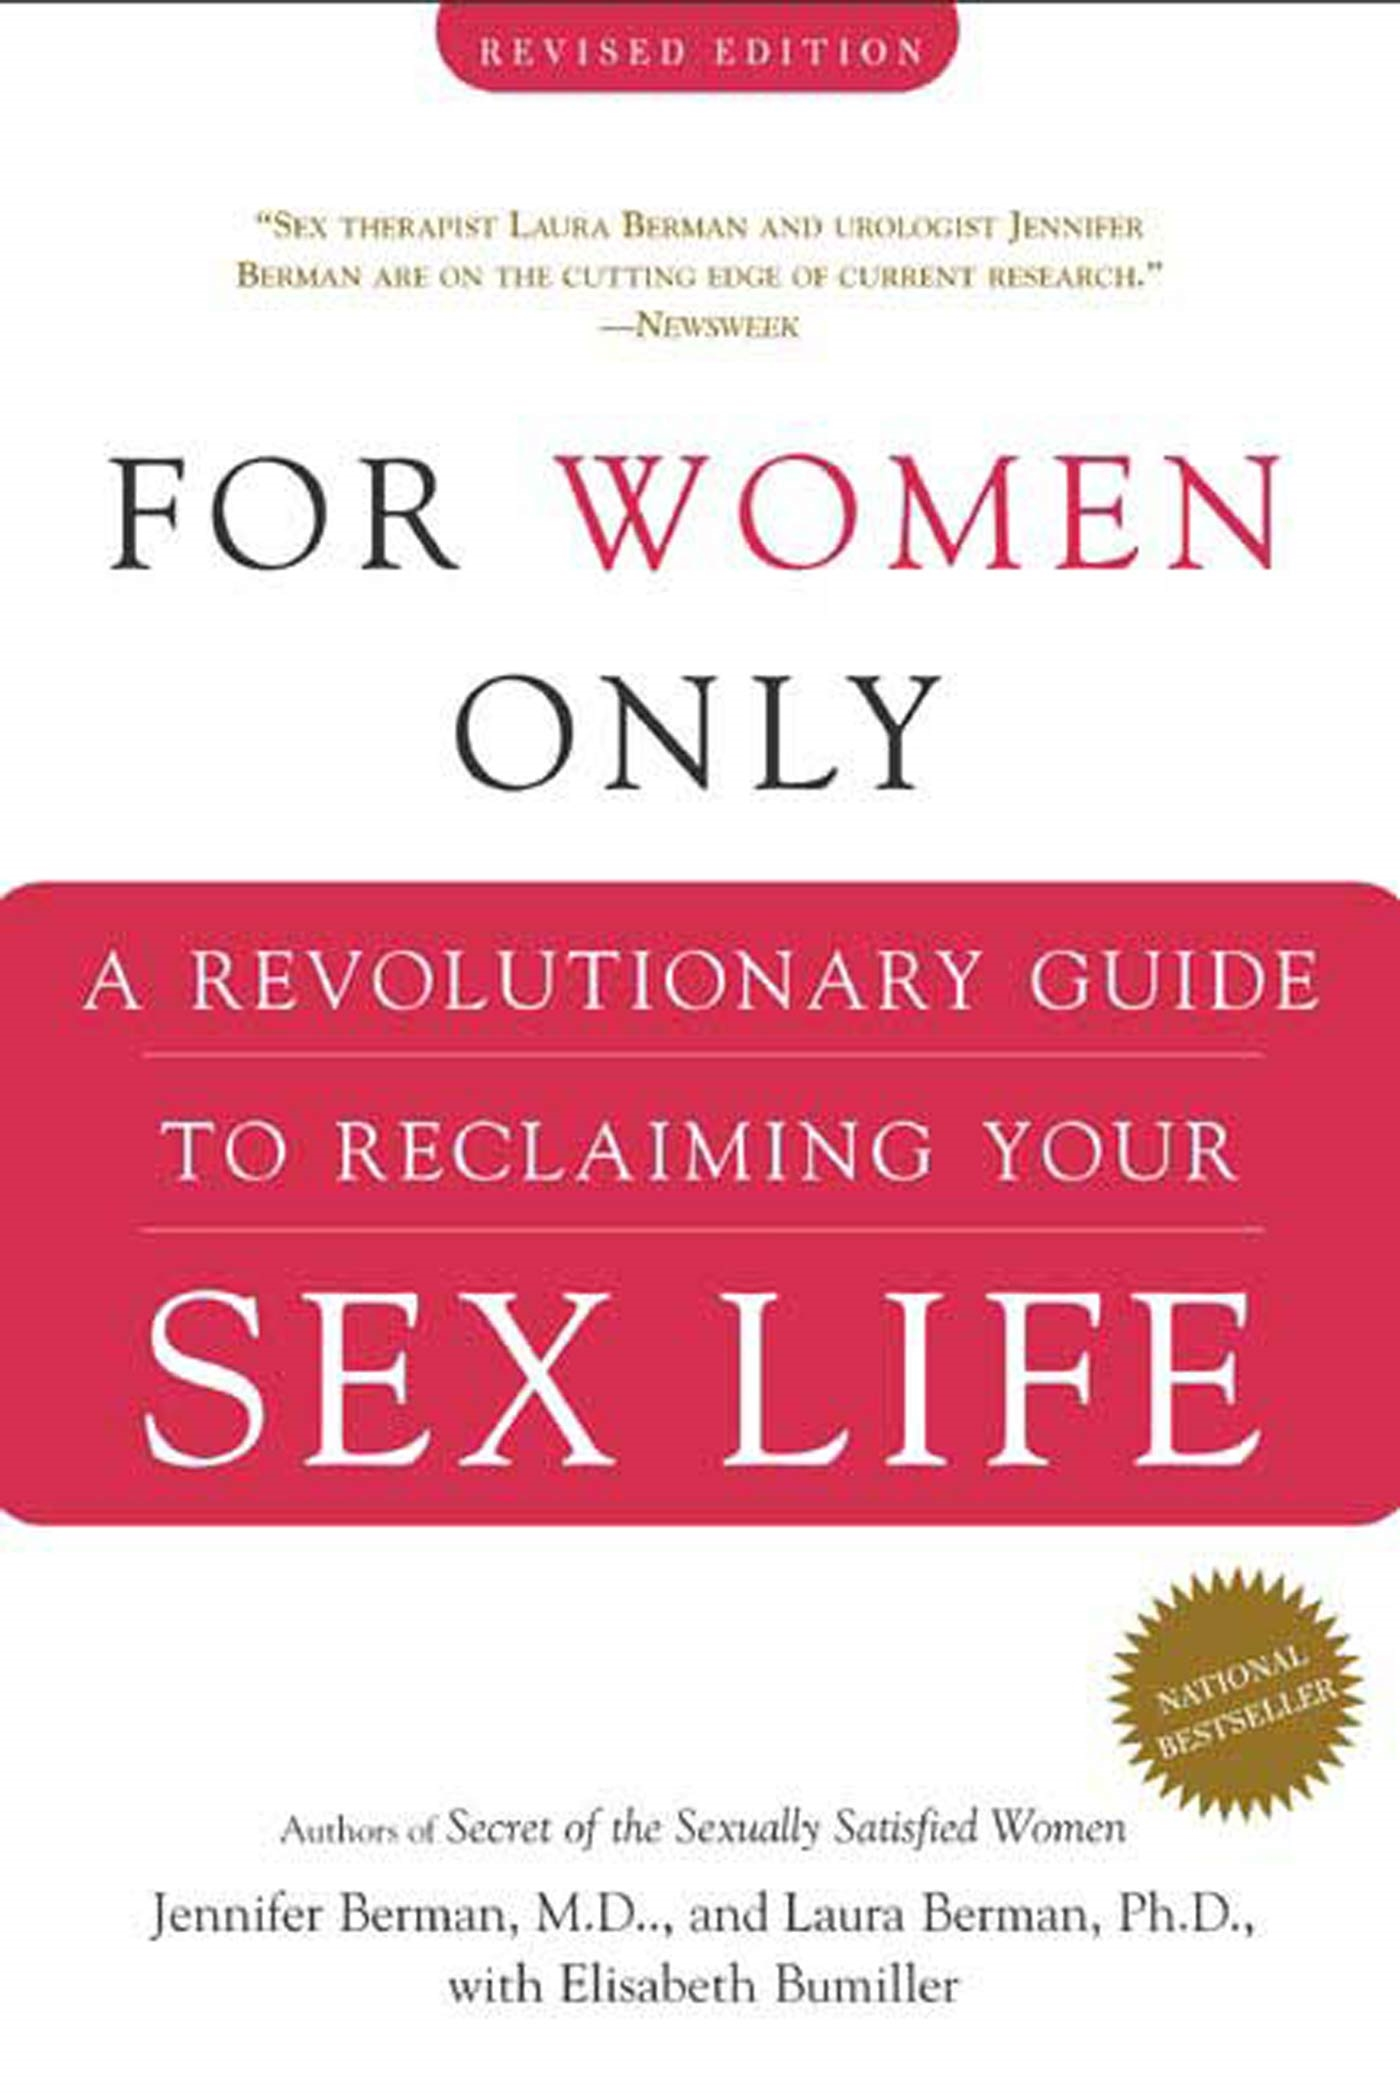 Guide life only reclaiming revolutionary sex woman